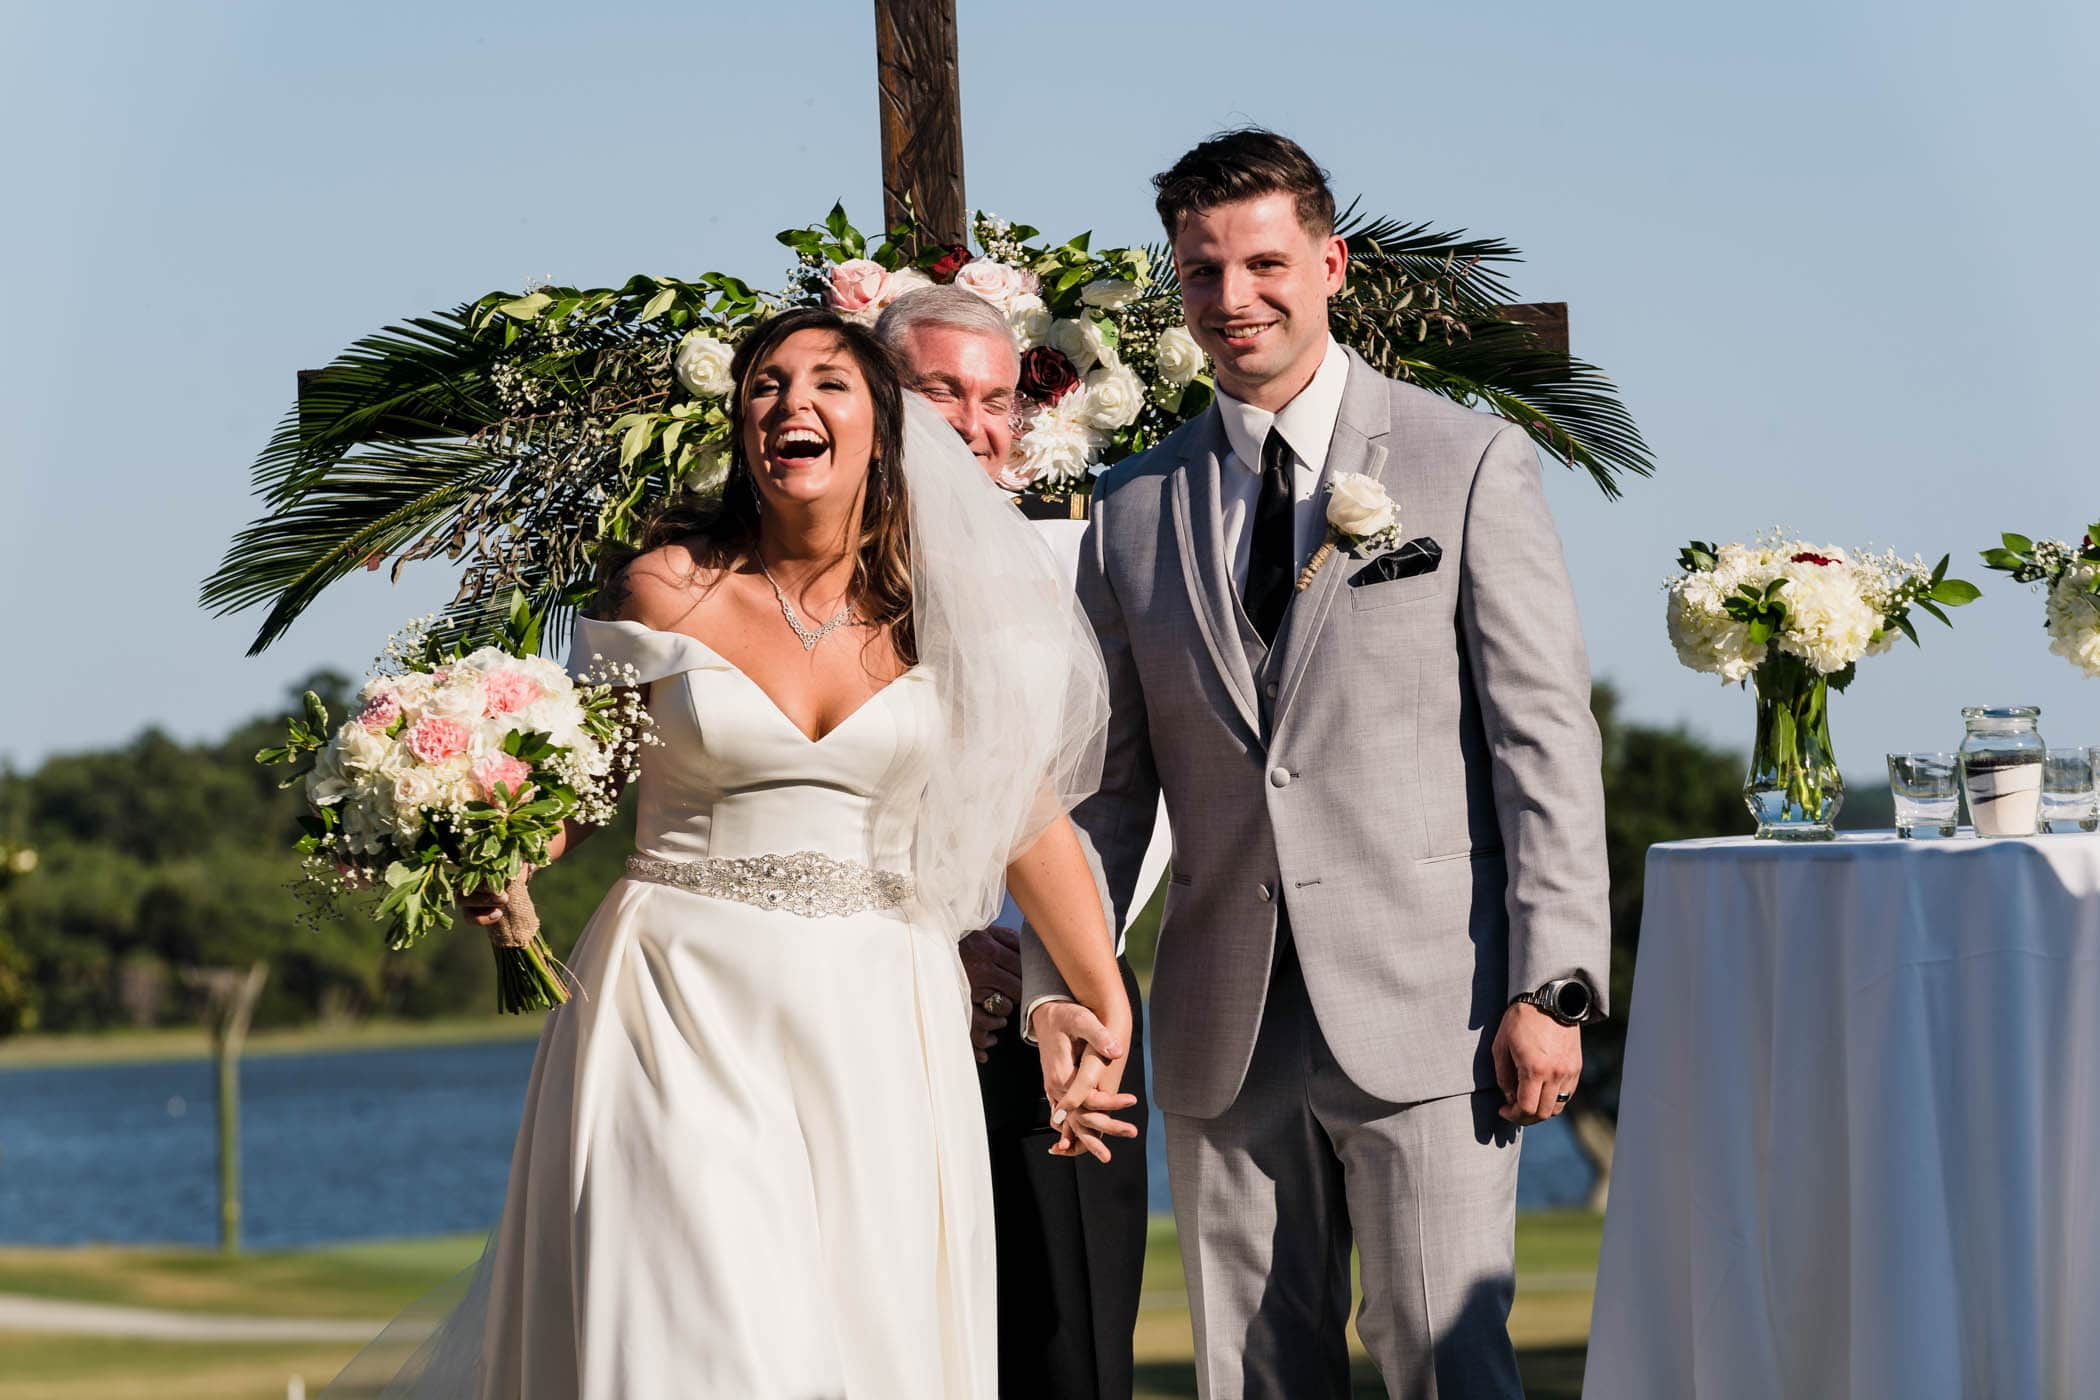 Happy Bride and Groom during recessional at wedding Dataw Island Club House by Susan DeLoach Photography SC wedding photographers